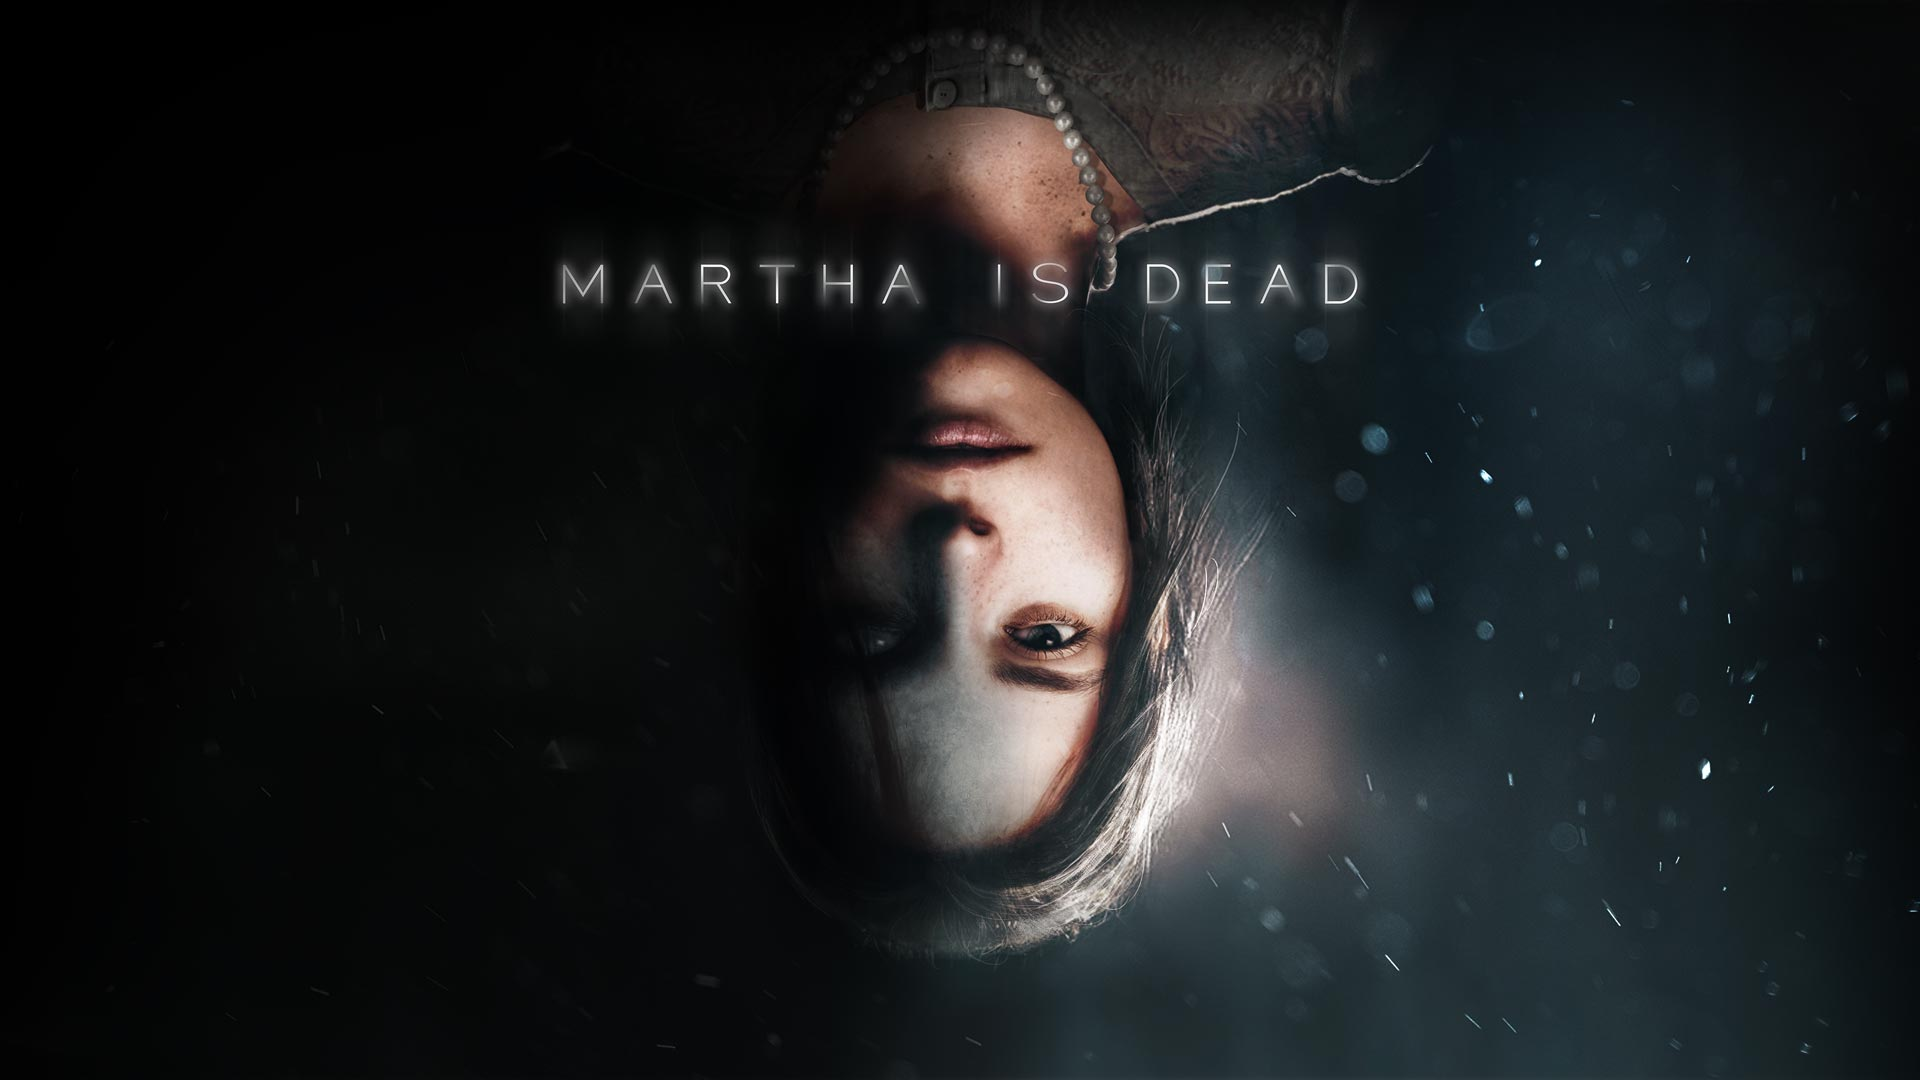 Martha is Dead confirmed for PlayStation systems.